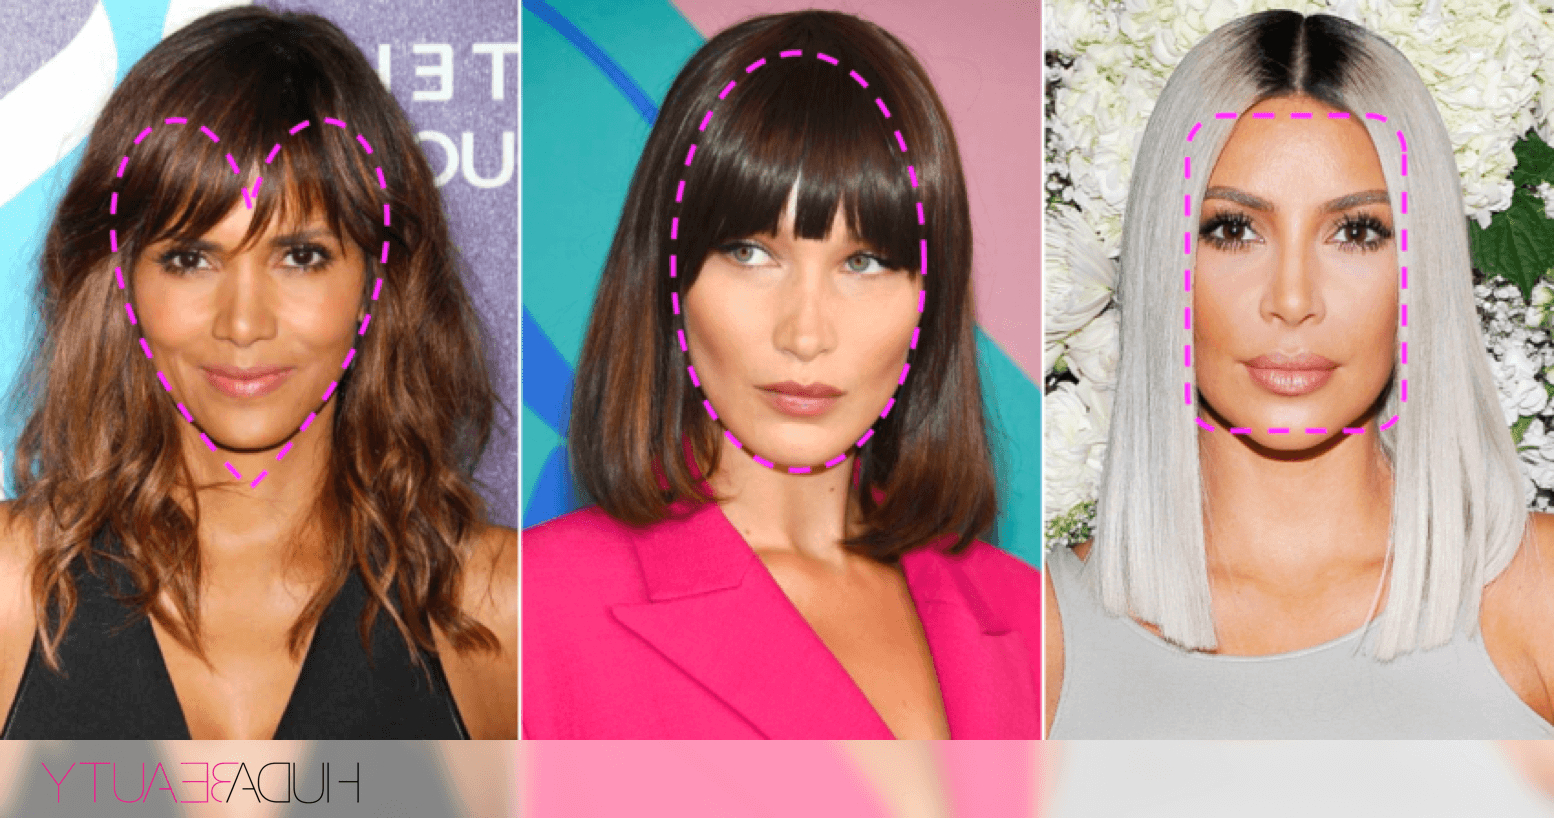 Well Liked Medium Haircuts For High Cheekbones For These Are The Hairstyles That'll Flatter Your Face The Best (View 20 of 20)